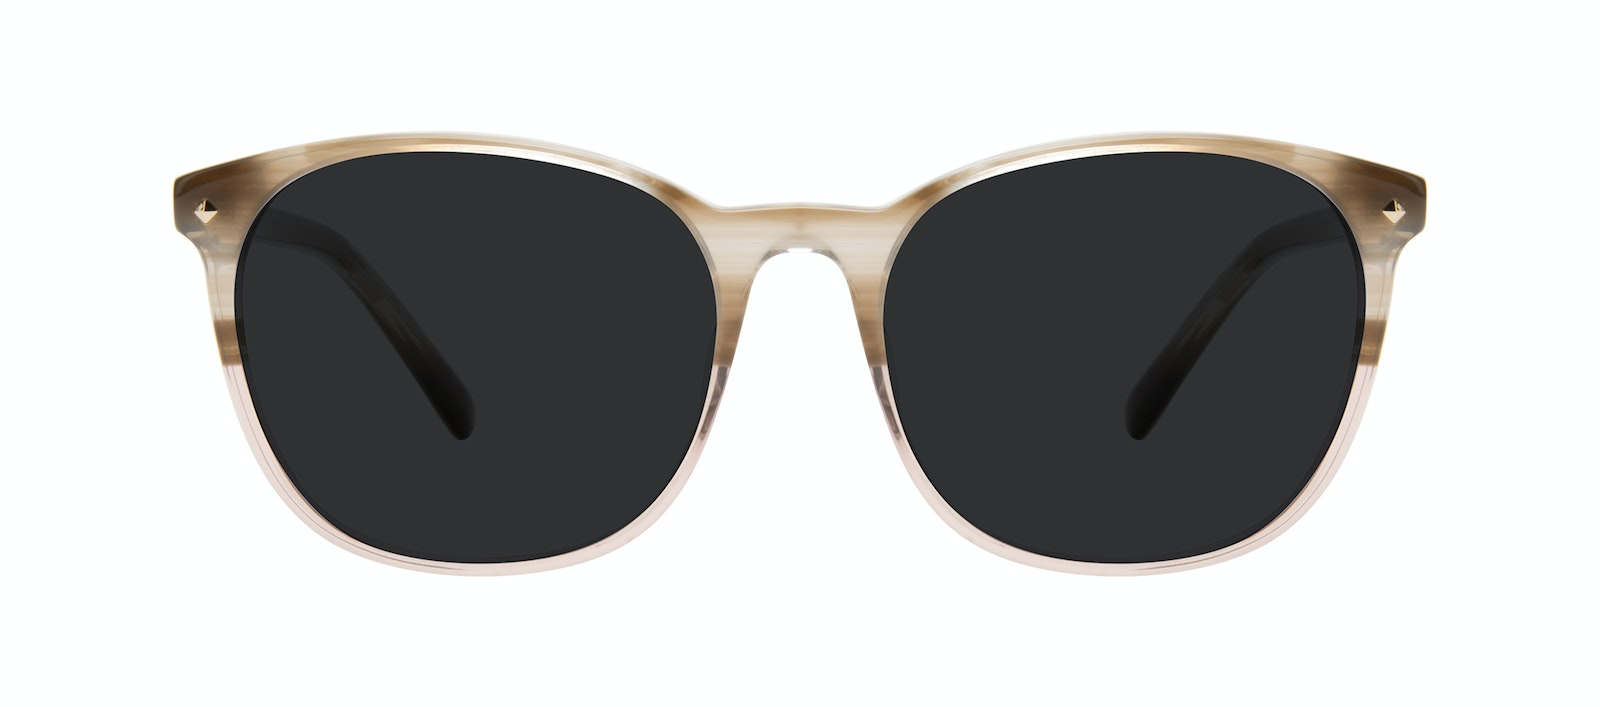 Affordable Fashion Glasses Round Sunglasses Women Revive Rosewood Front